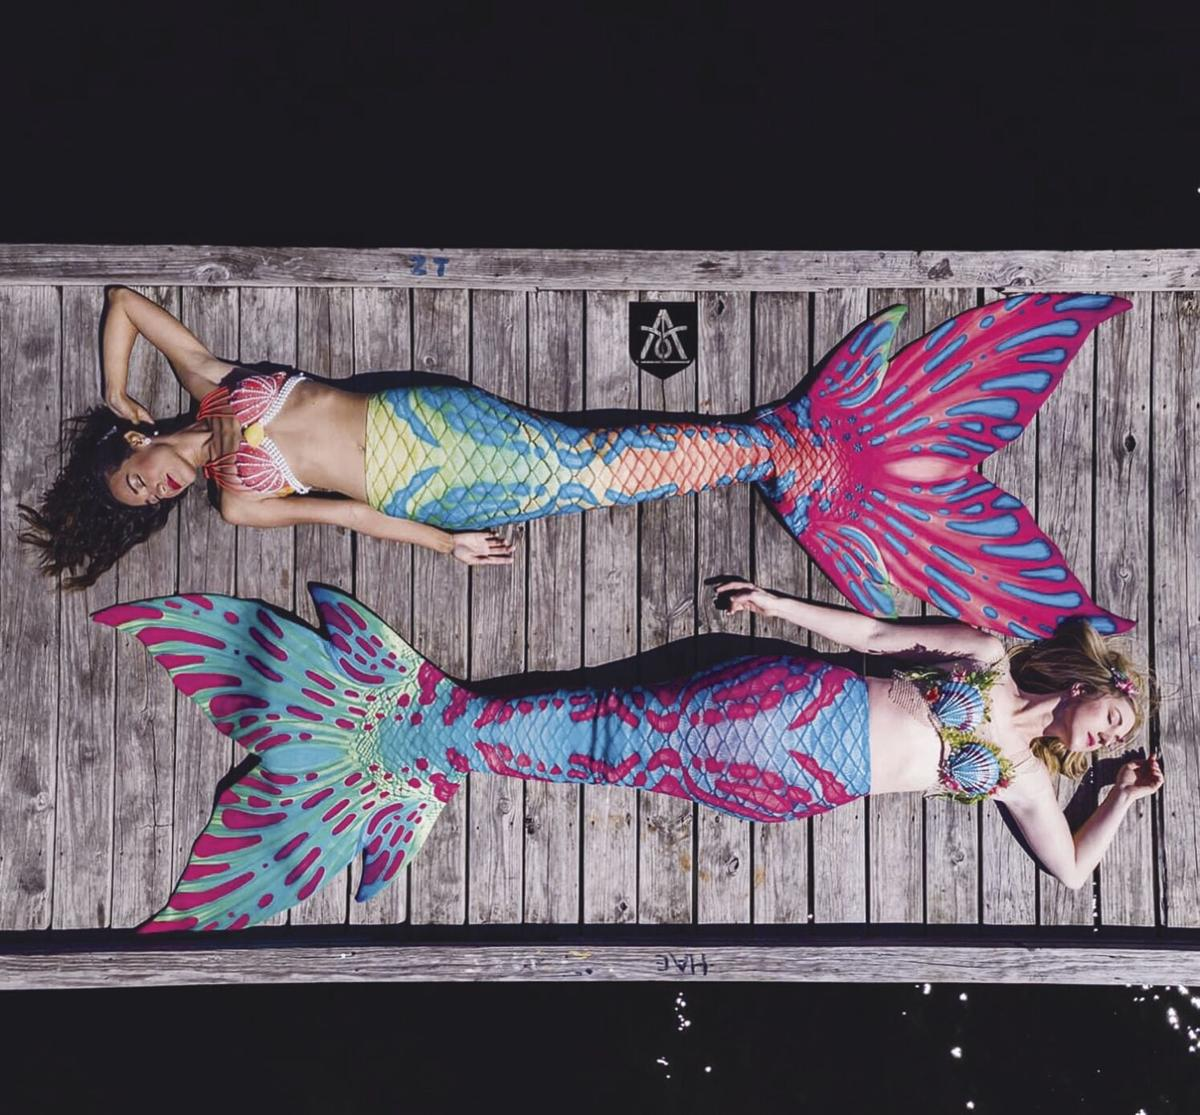 Mermaids from above